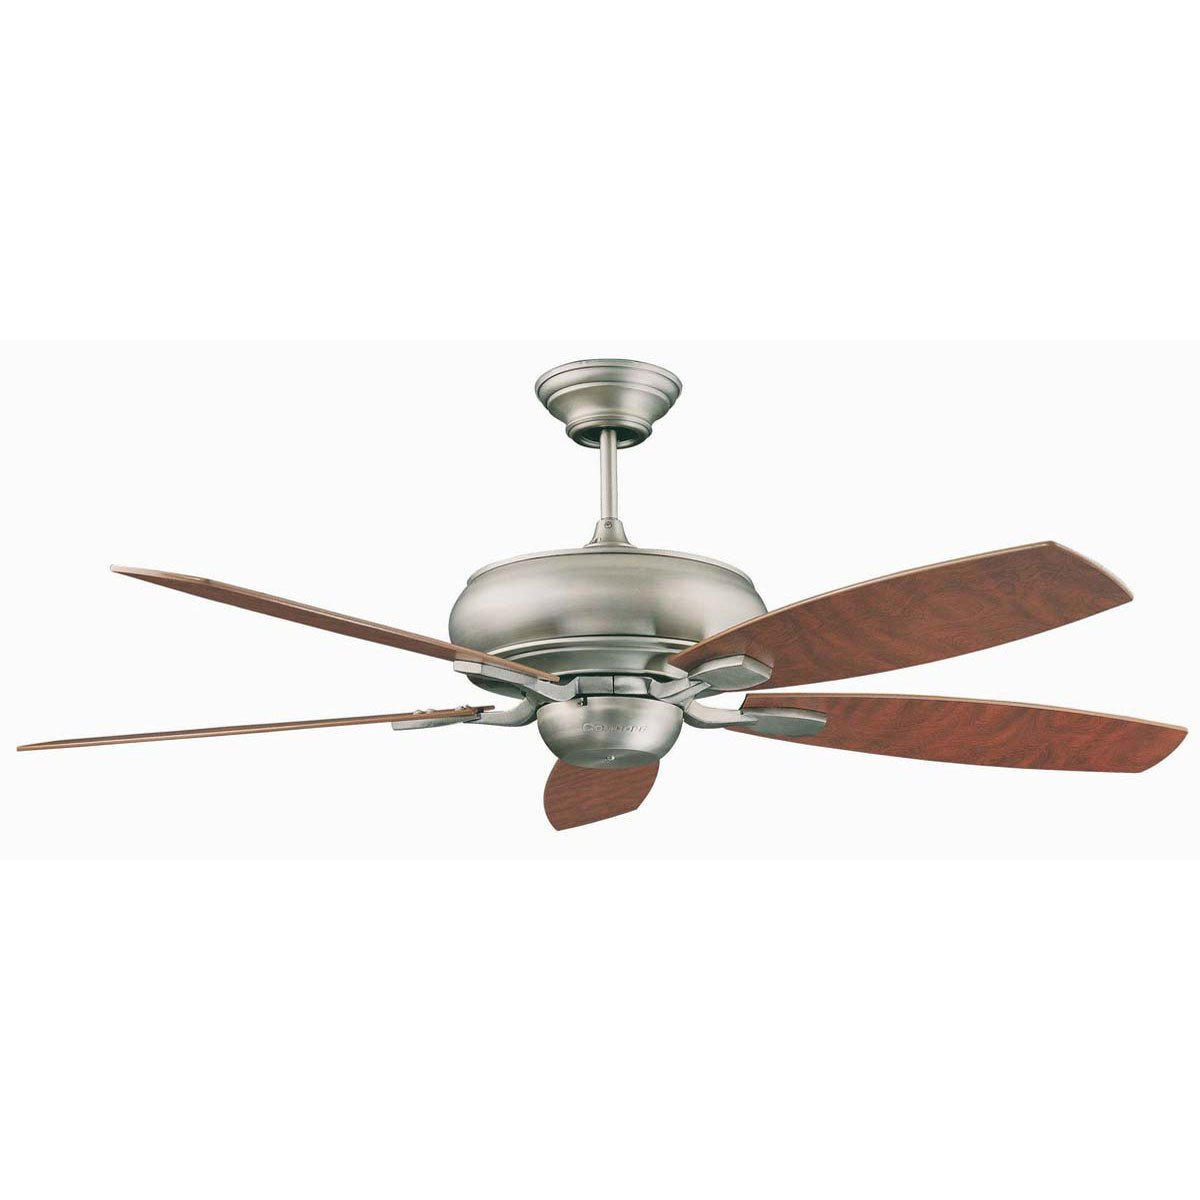 "Concord Fans Contemporary 52"" Roosevelt Satin Nickel Ceiling Fan"